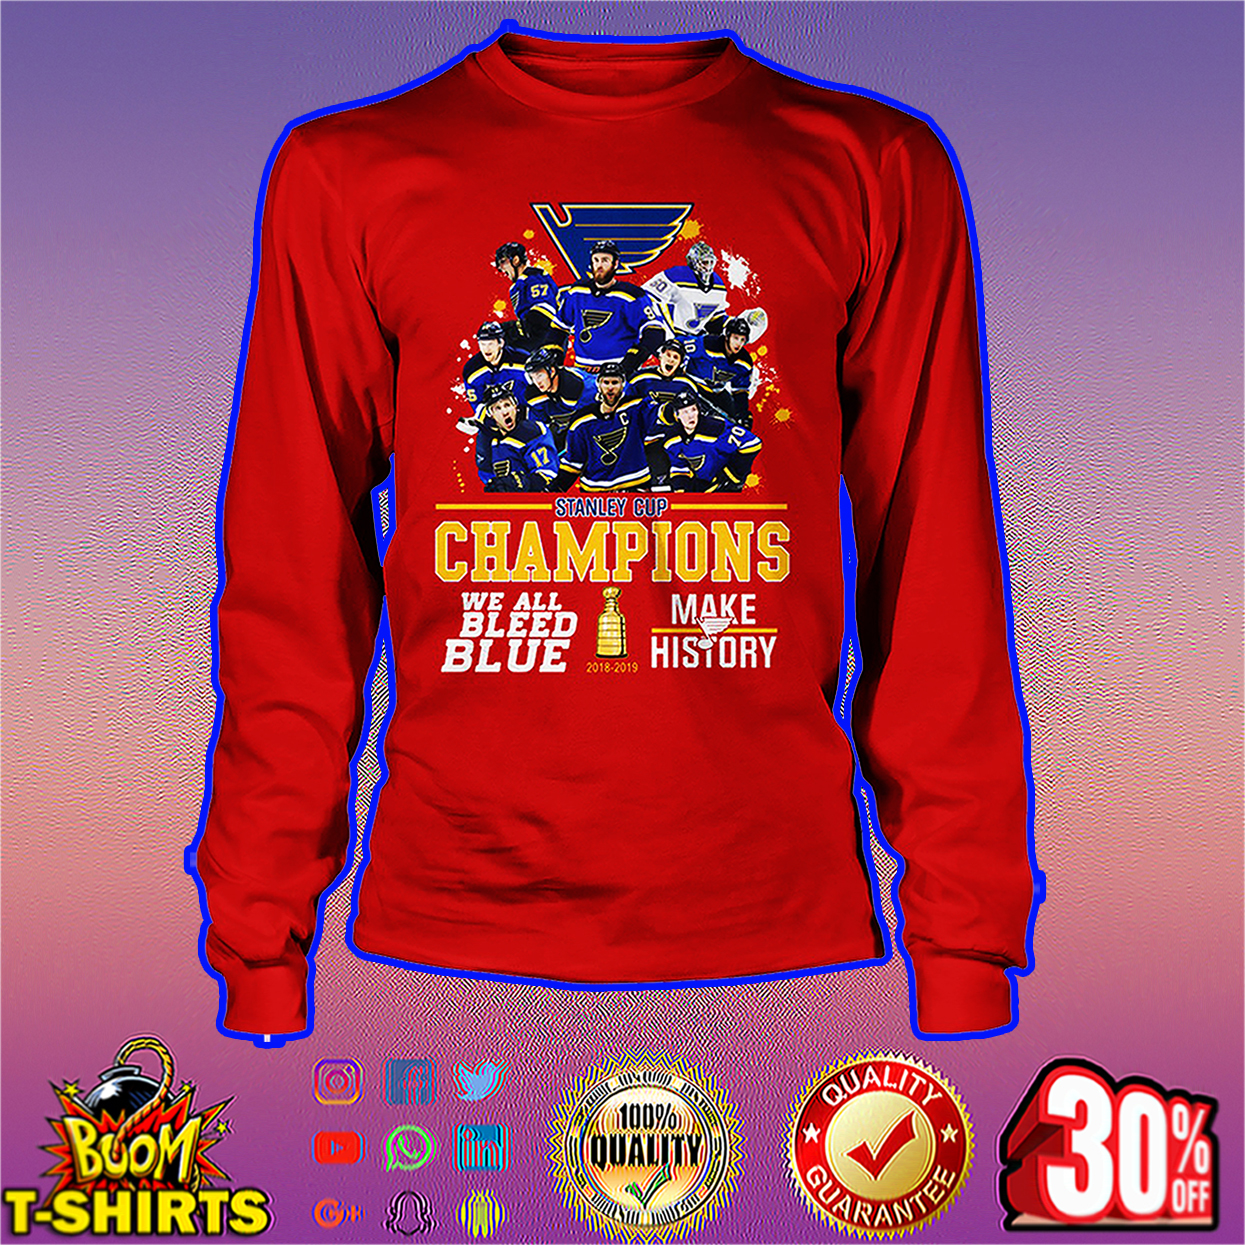 St. Louis Blues 2019 Stanley Cup Champions We Bleed Blue Make History long sleeve tee